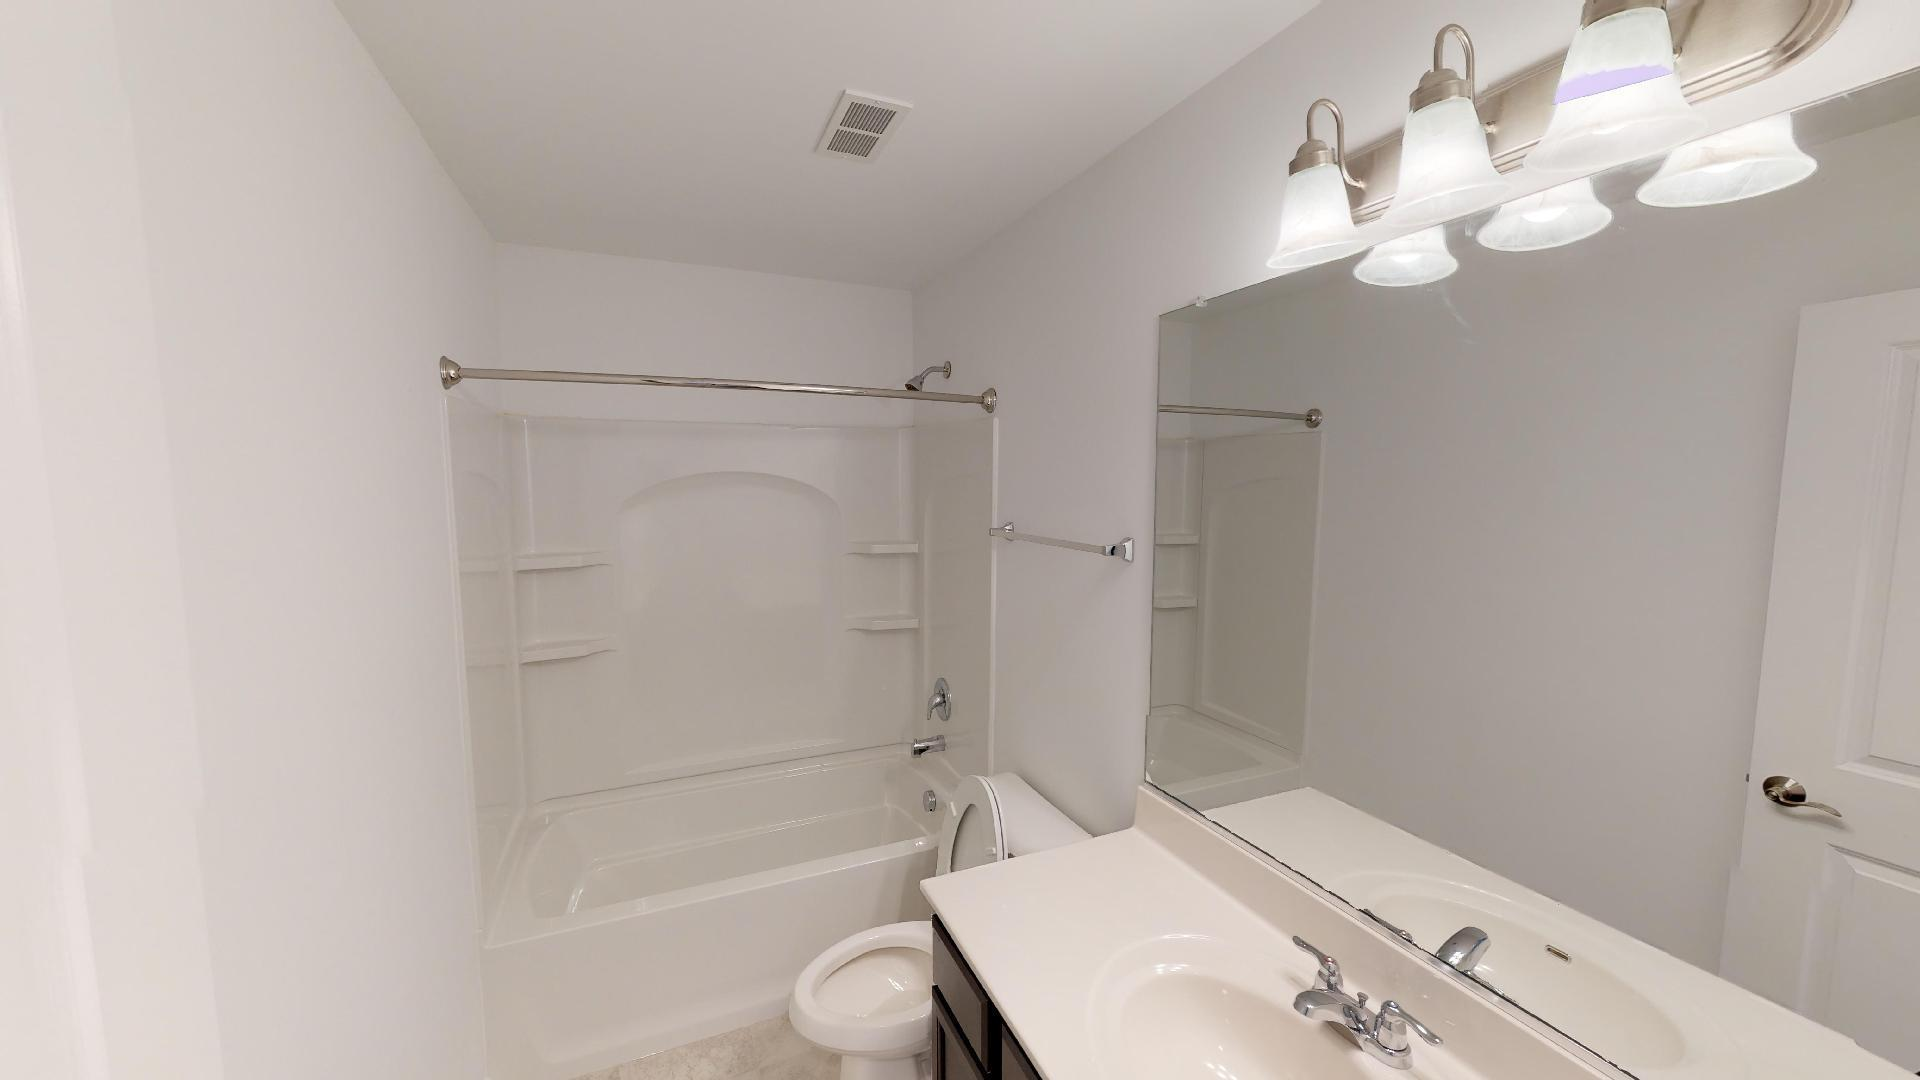 Bathroom featured in The Fiesta By Bigelow Homes in Chicago, IL